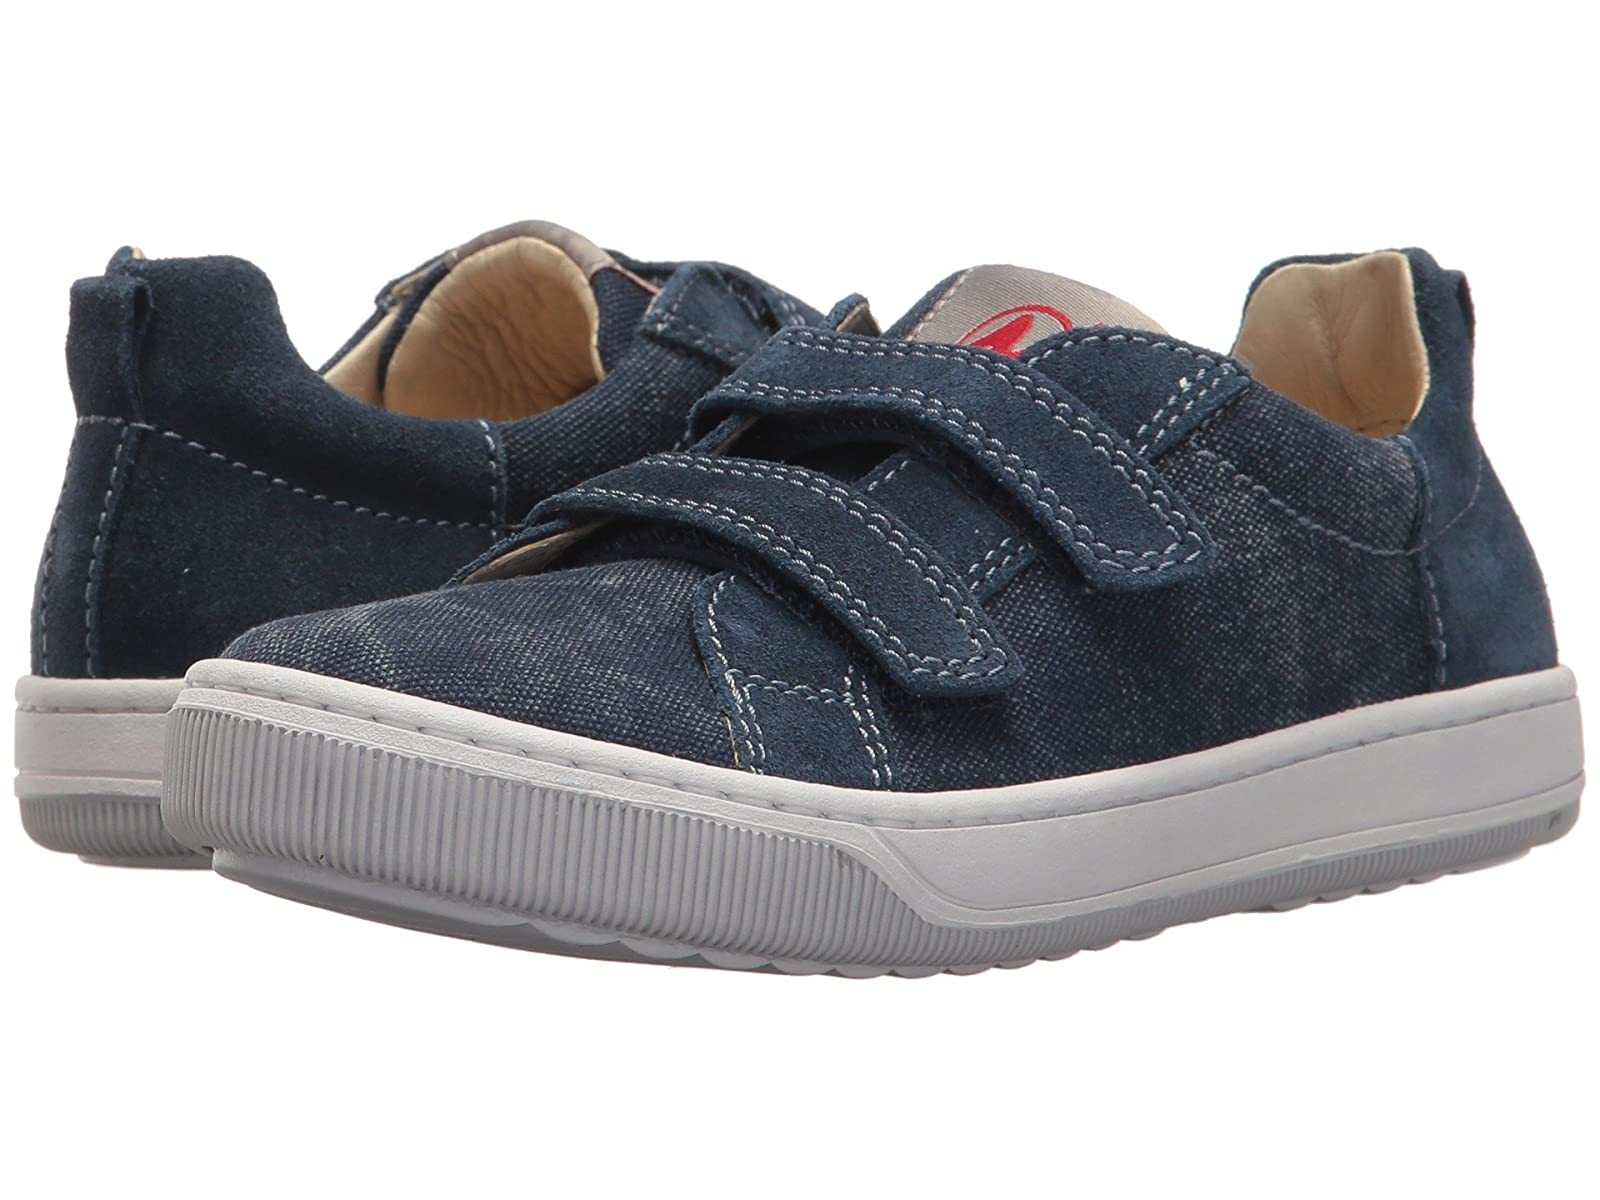 Naturino Caleb VL SS18 (Toddler/Little Kid/Big Kid)Atmospheric grades have affordable shoes